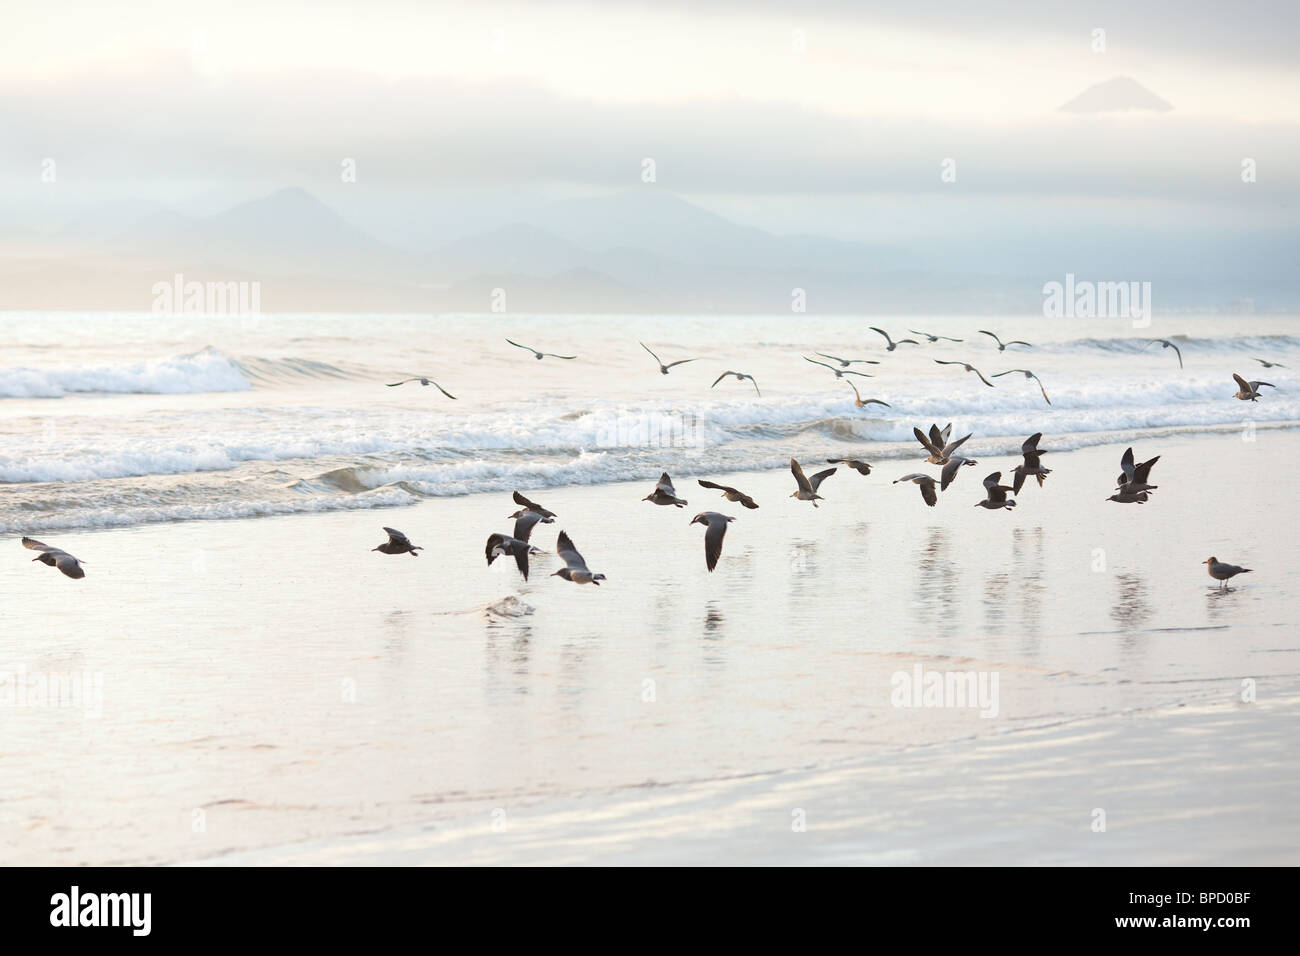 Flock of seagulls on the beach - Stock Image